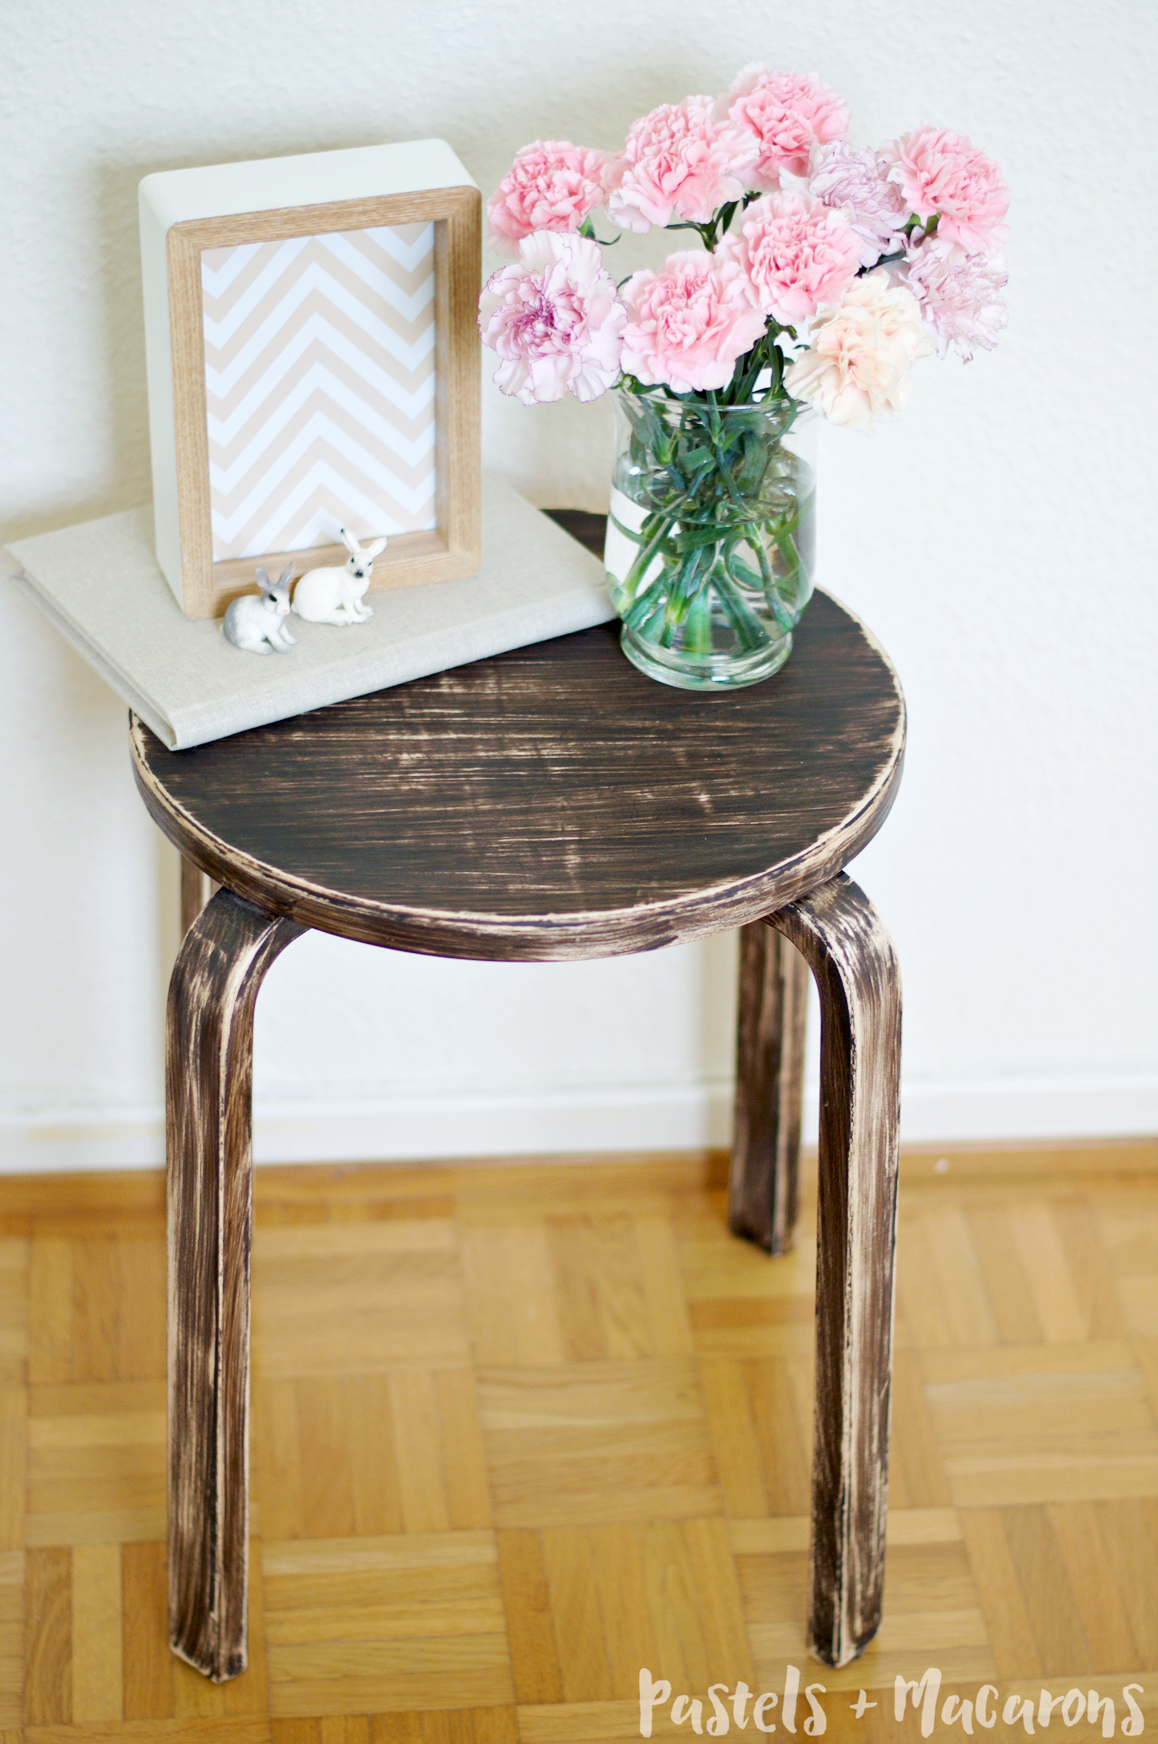 IKEA Frosta Stool Makeover by Pastels & Macarons